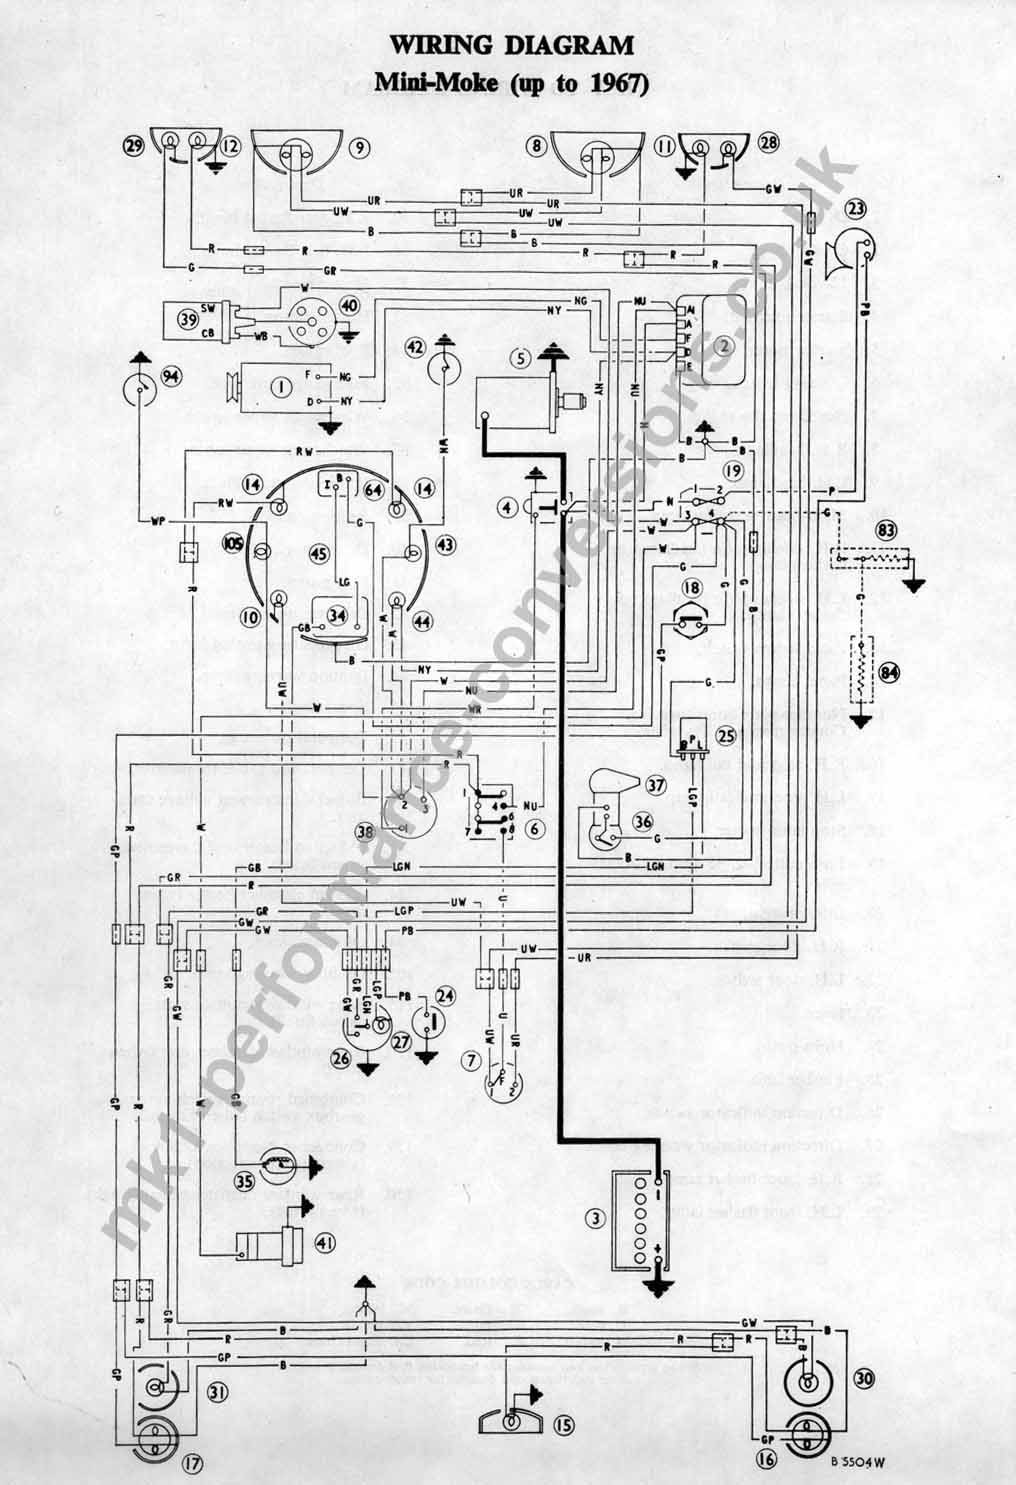 mk1_moke_wiring technical (electrical) escort mk1 wiring diagram at alyssarenee.co